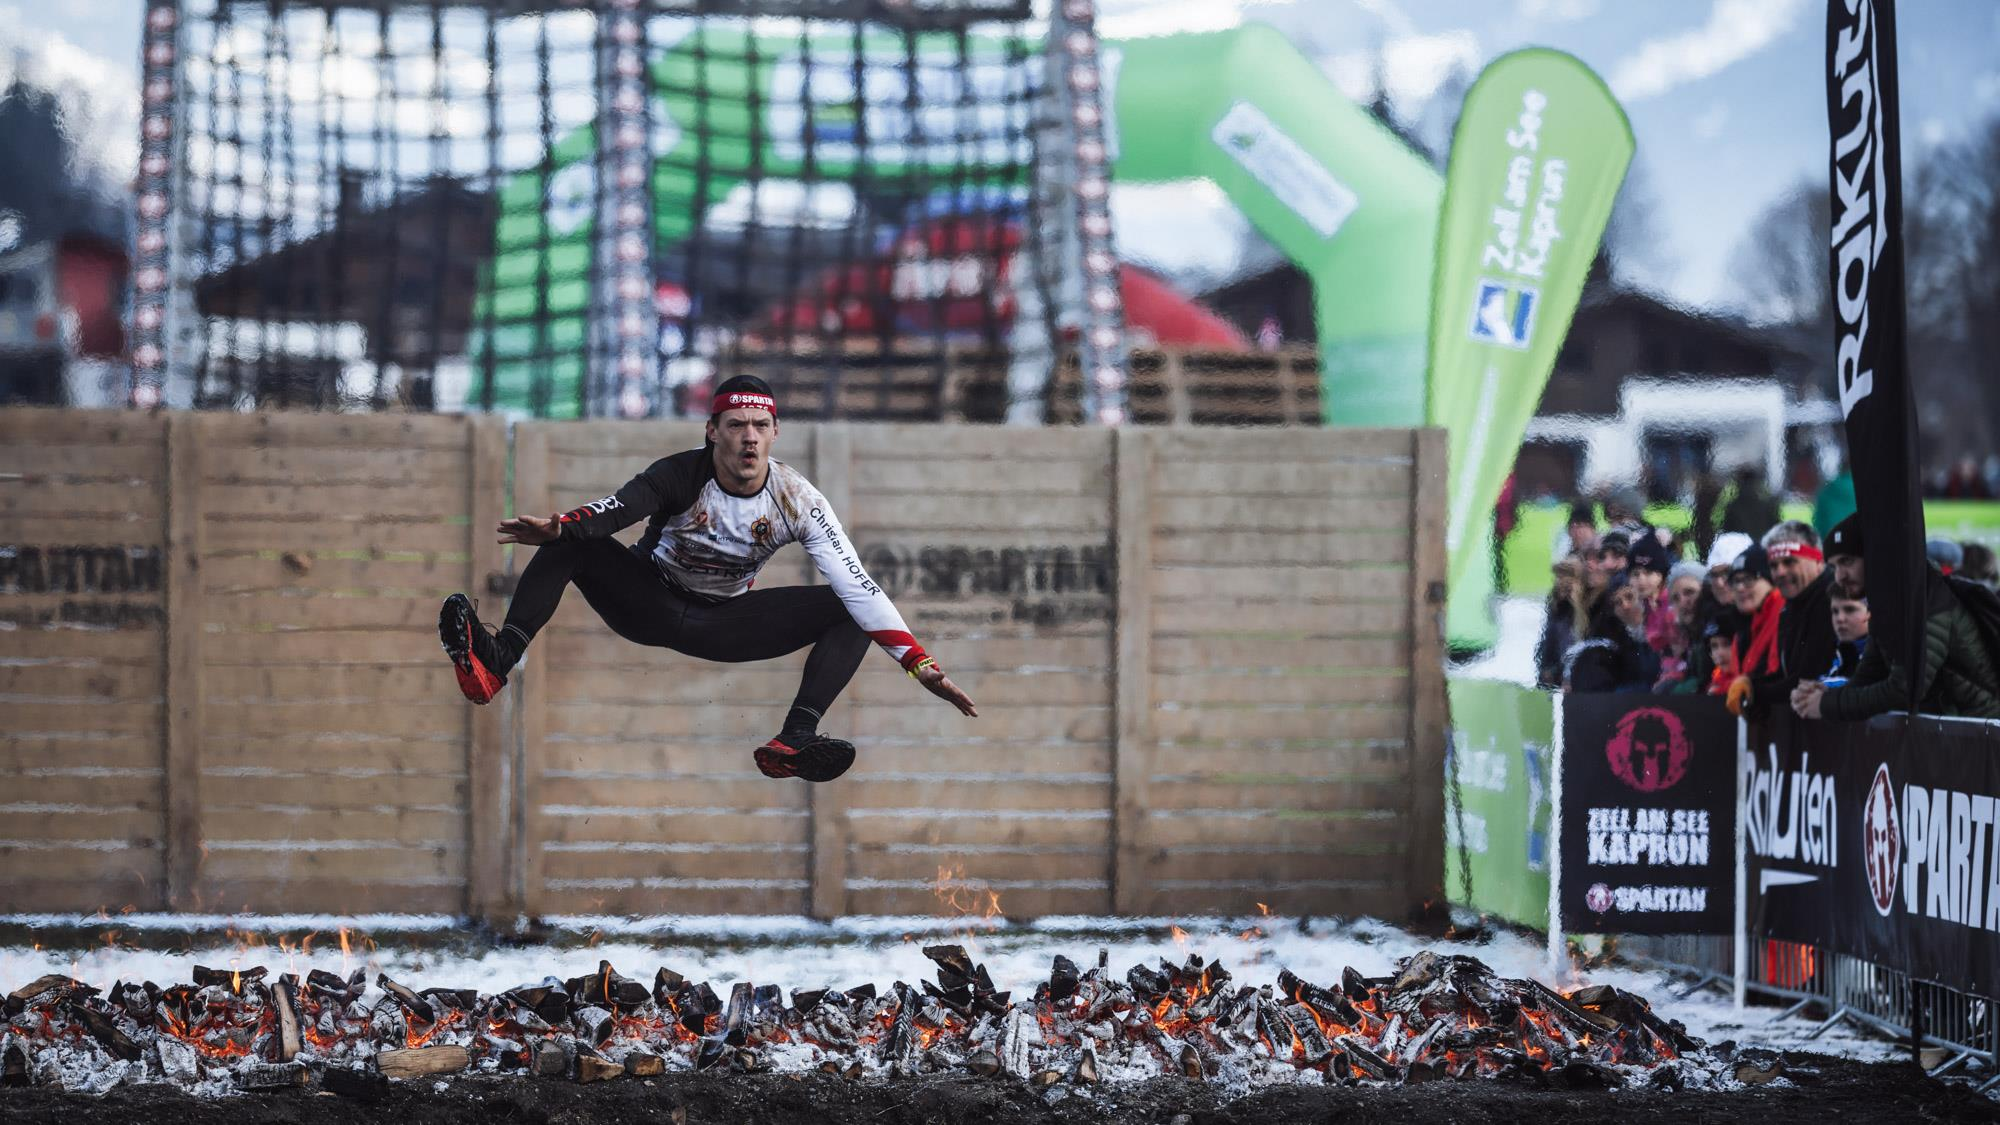 Winter Spartan Race - 16.01.2021